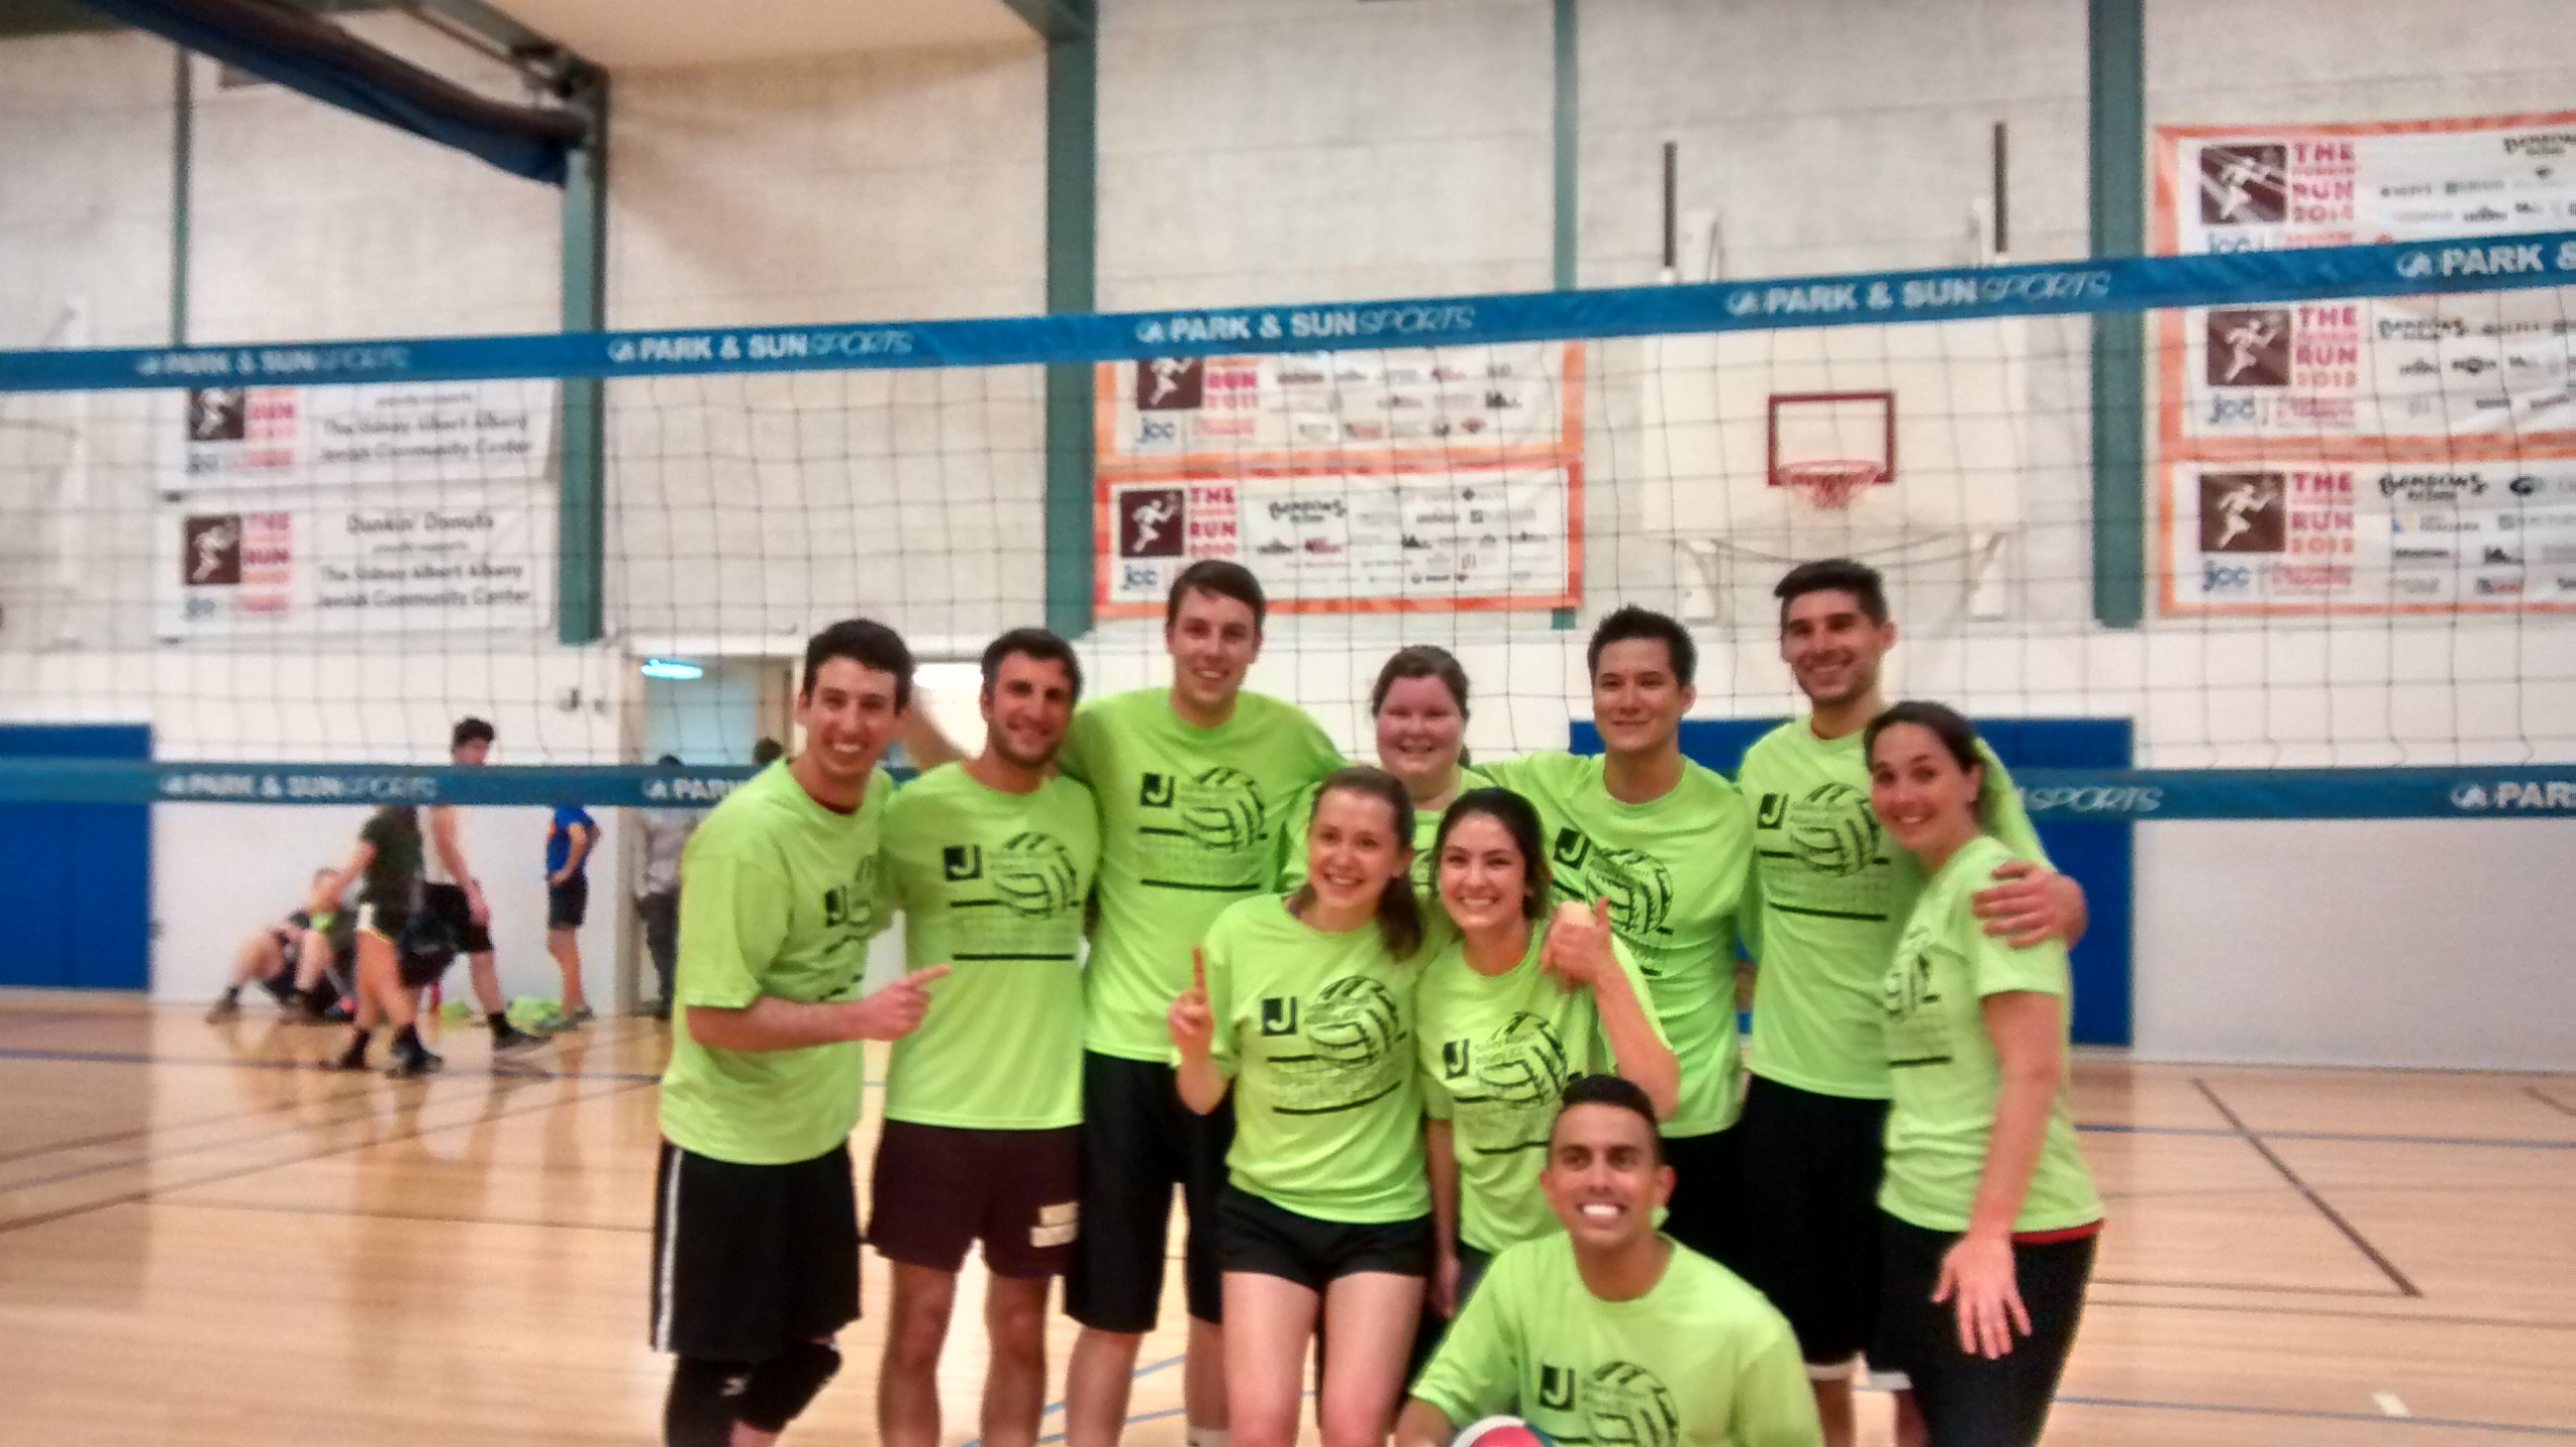 Sidney albert albany jcc adult co ed recreational volleyball